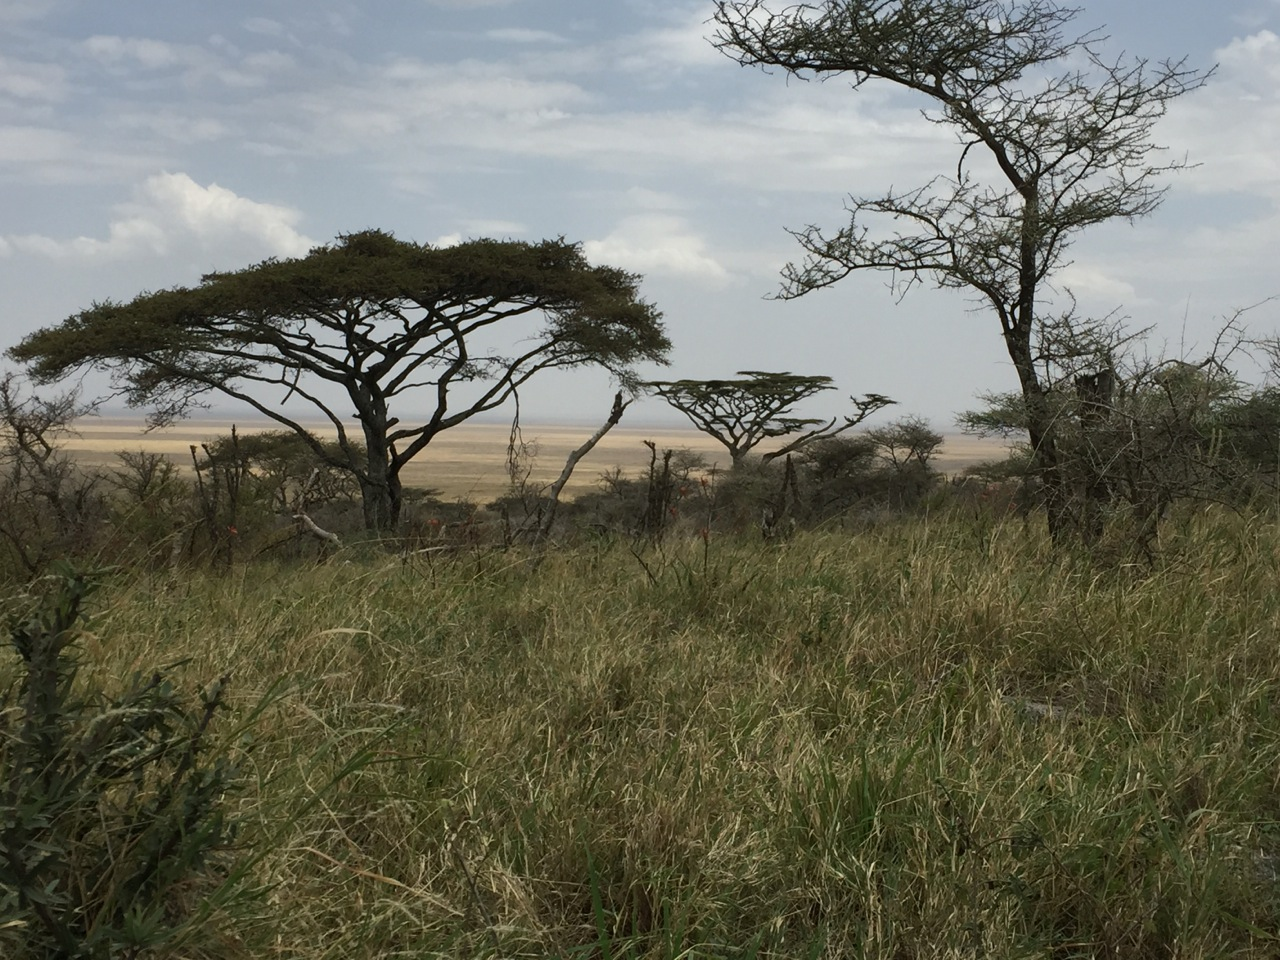 The acacia is the iconic tree throughout Tanzanian savannah landscape. It's a major food source for elephants and giraffes.